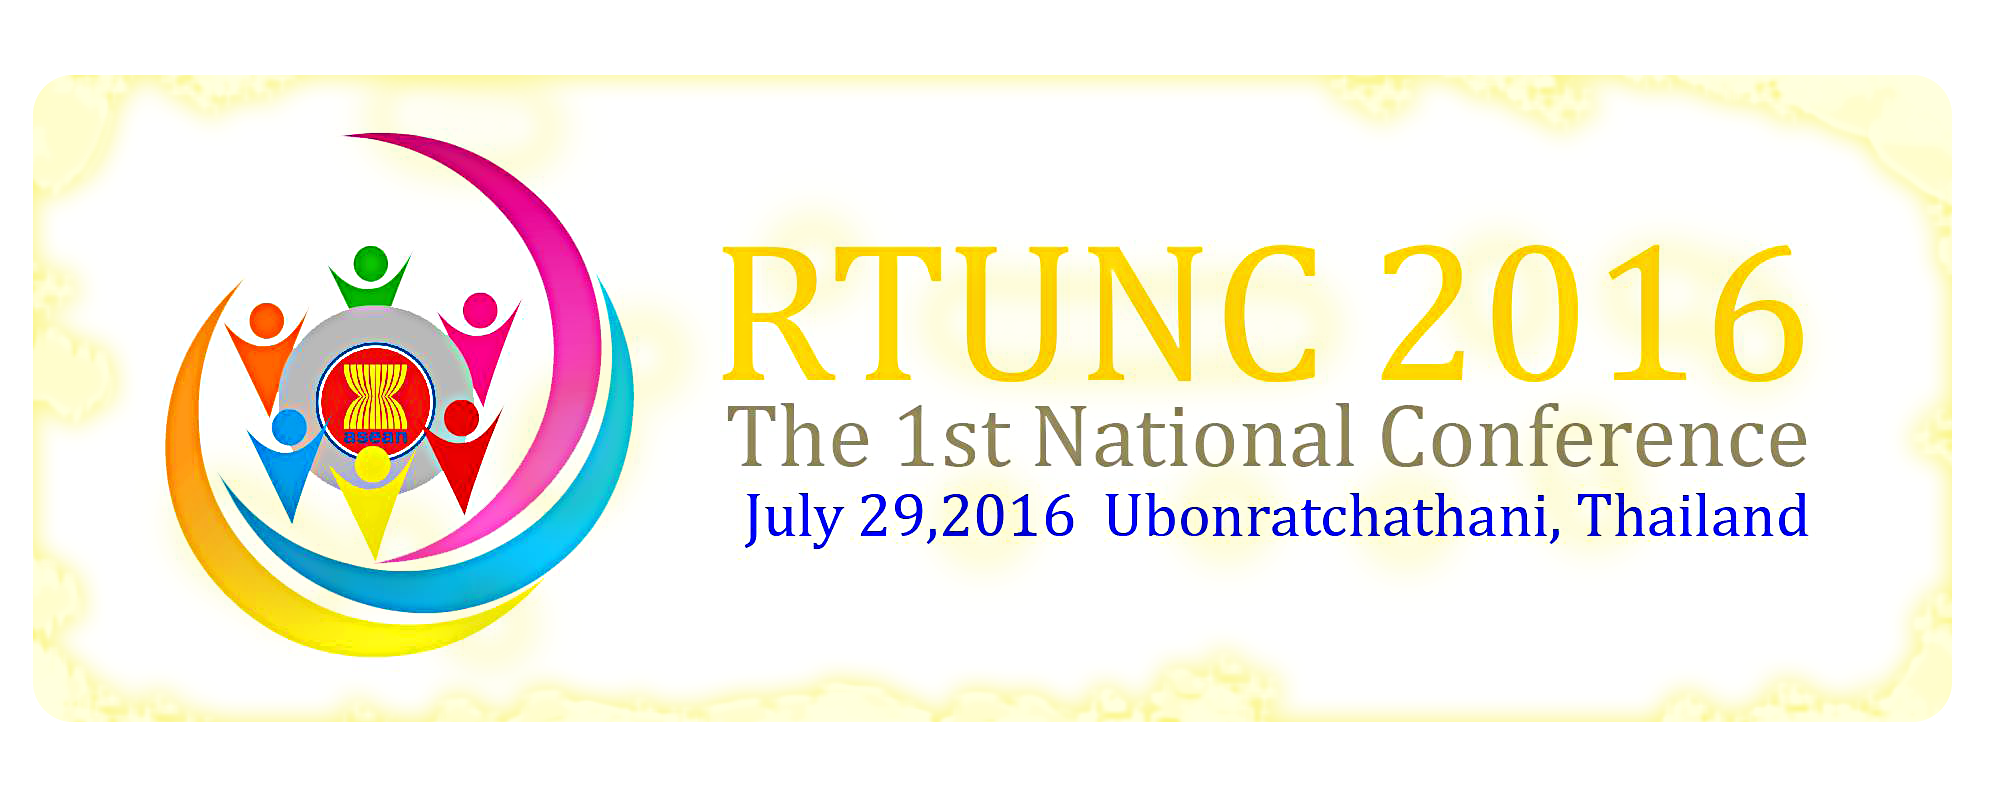 Go to http://rtunc2016.rtu.ac.th/